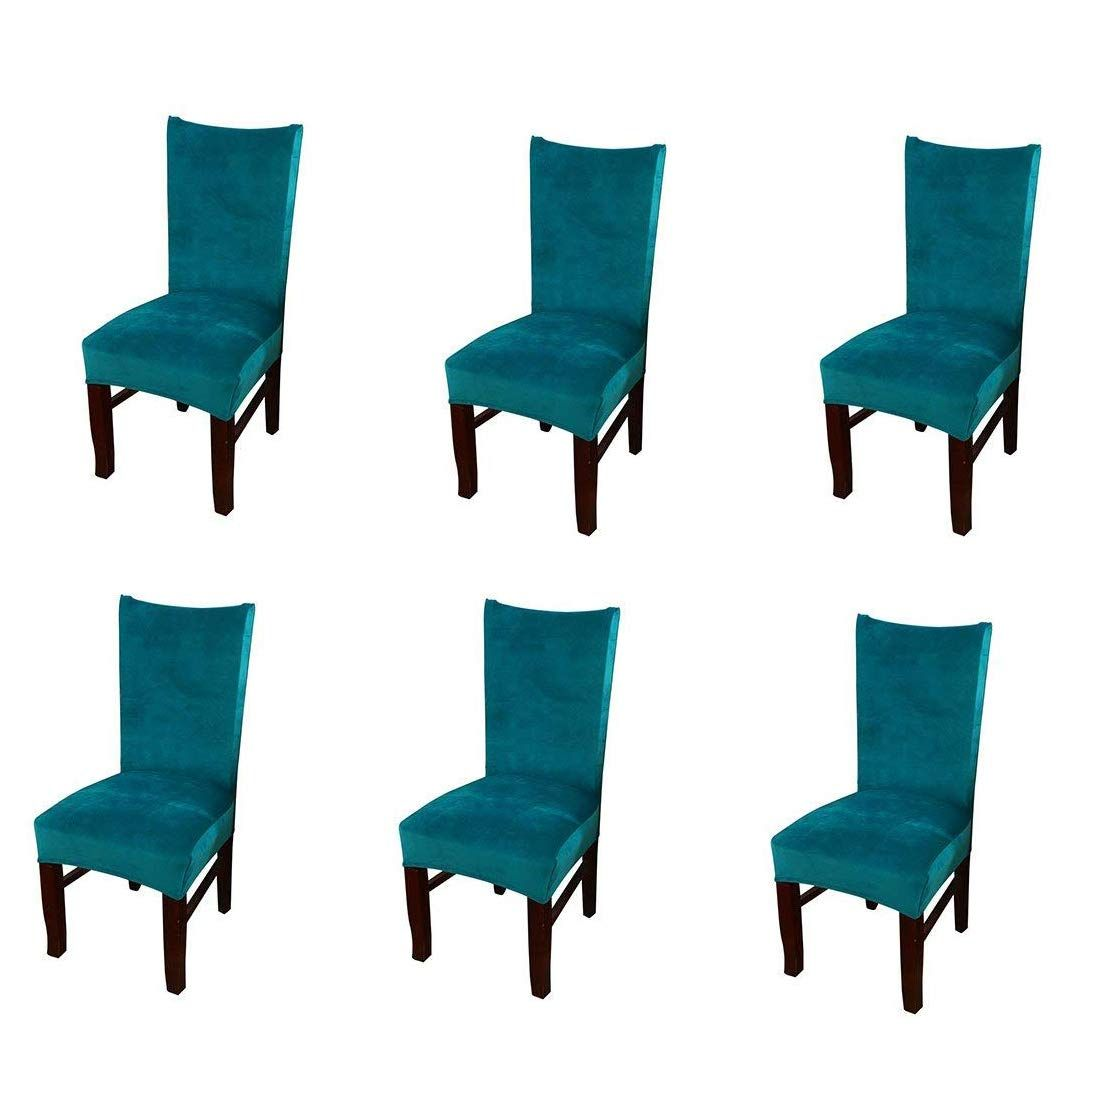 Pinji 6pcs Stretch Chair Cover Thicken Removable Short Dining Room Protector Seat Slipcover Peacock Blu Chair Stretch Chair Covers Dining Room Chair Slipcovers